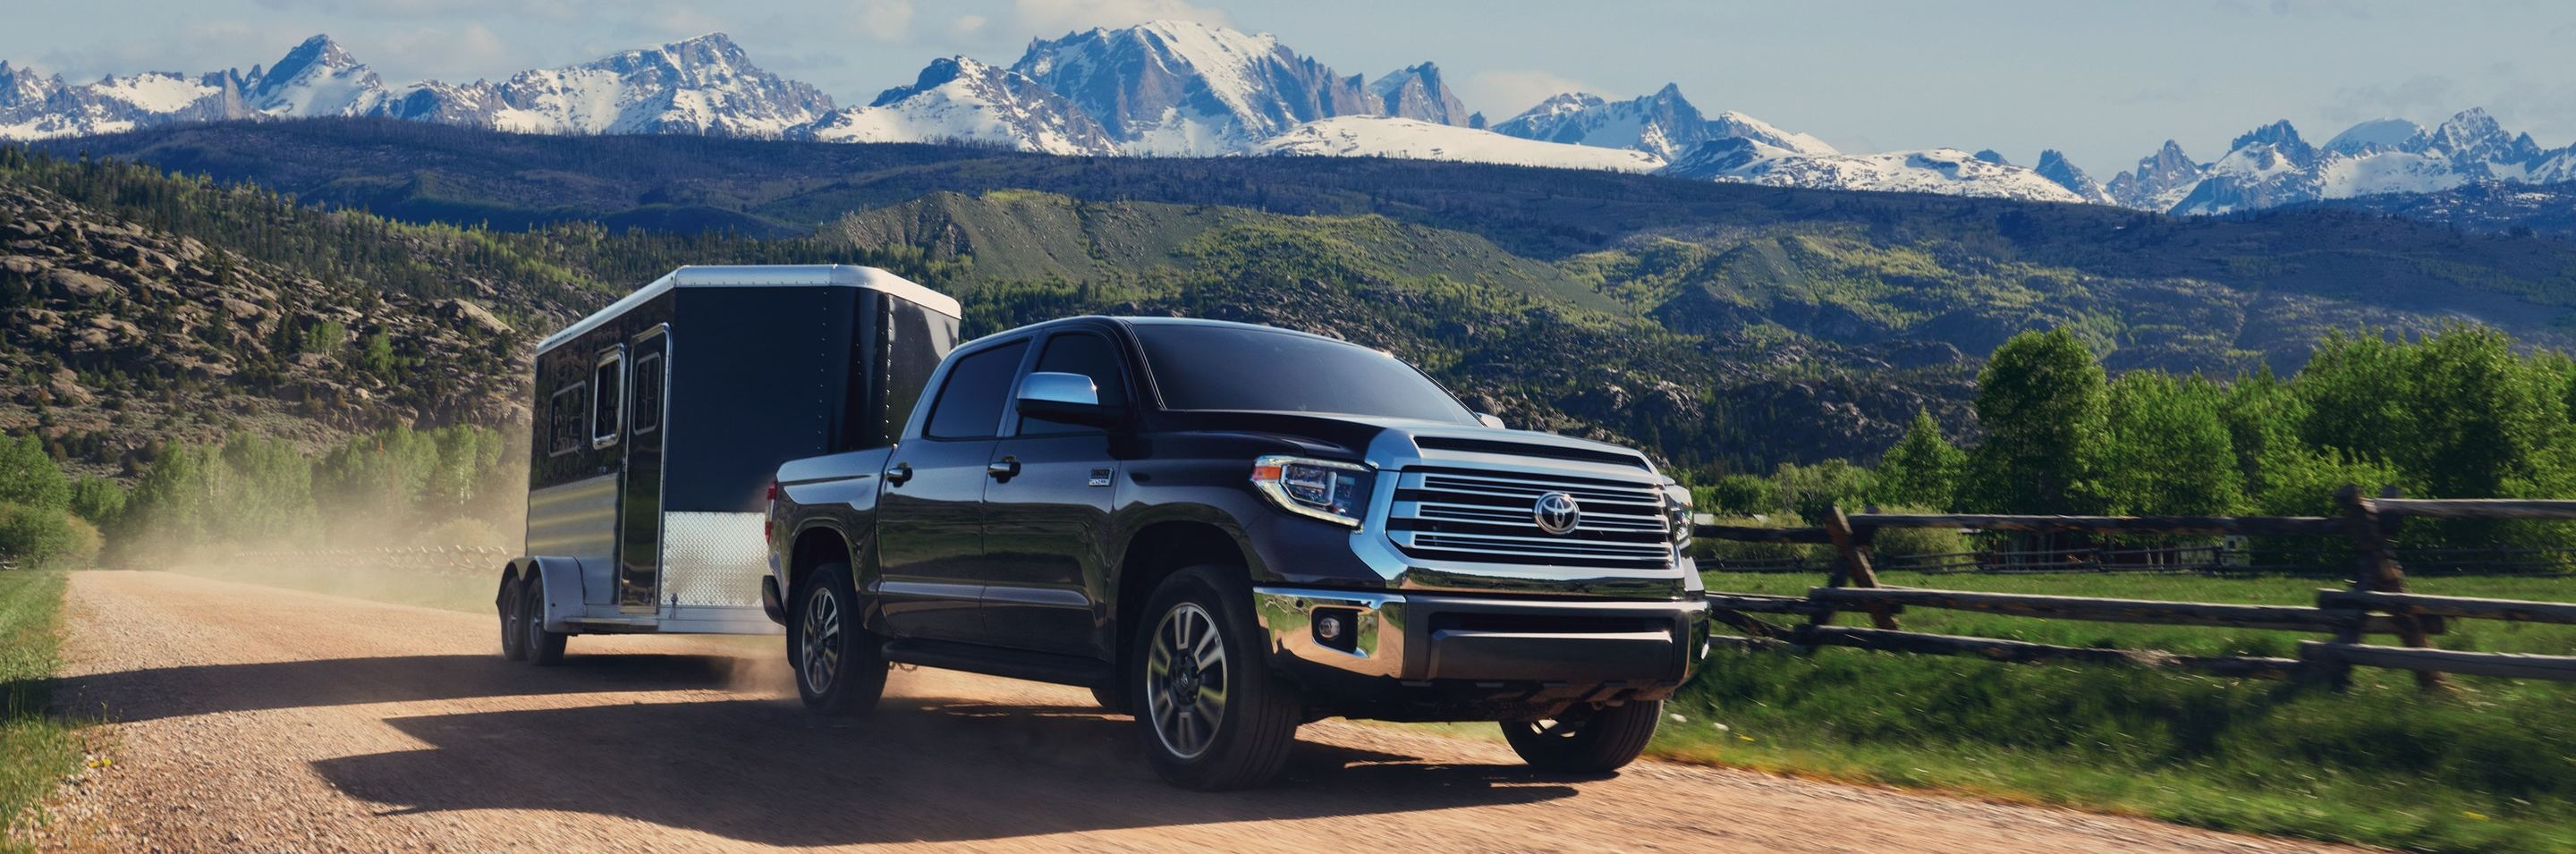 2020 Toyota Tundra for Sale near Olathe, KS, 66061